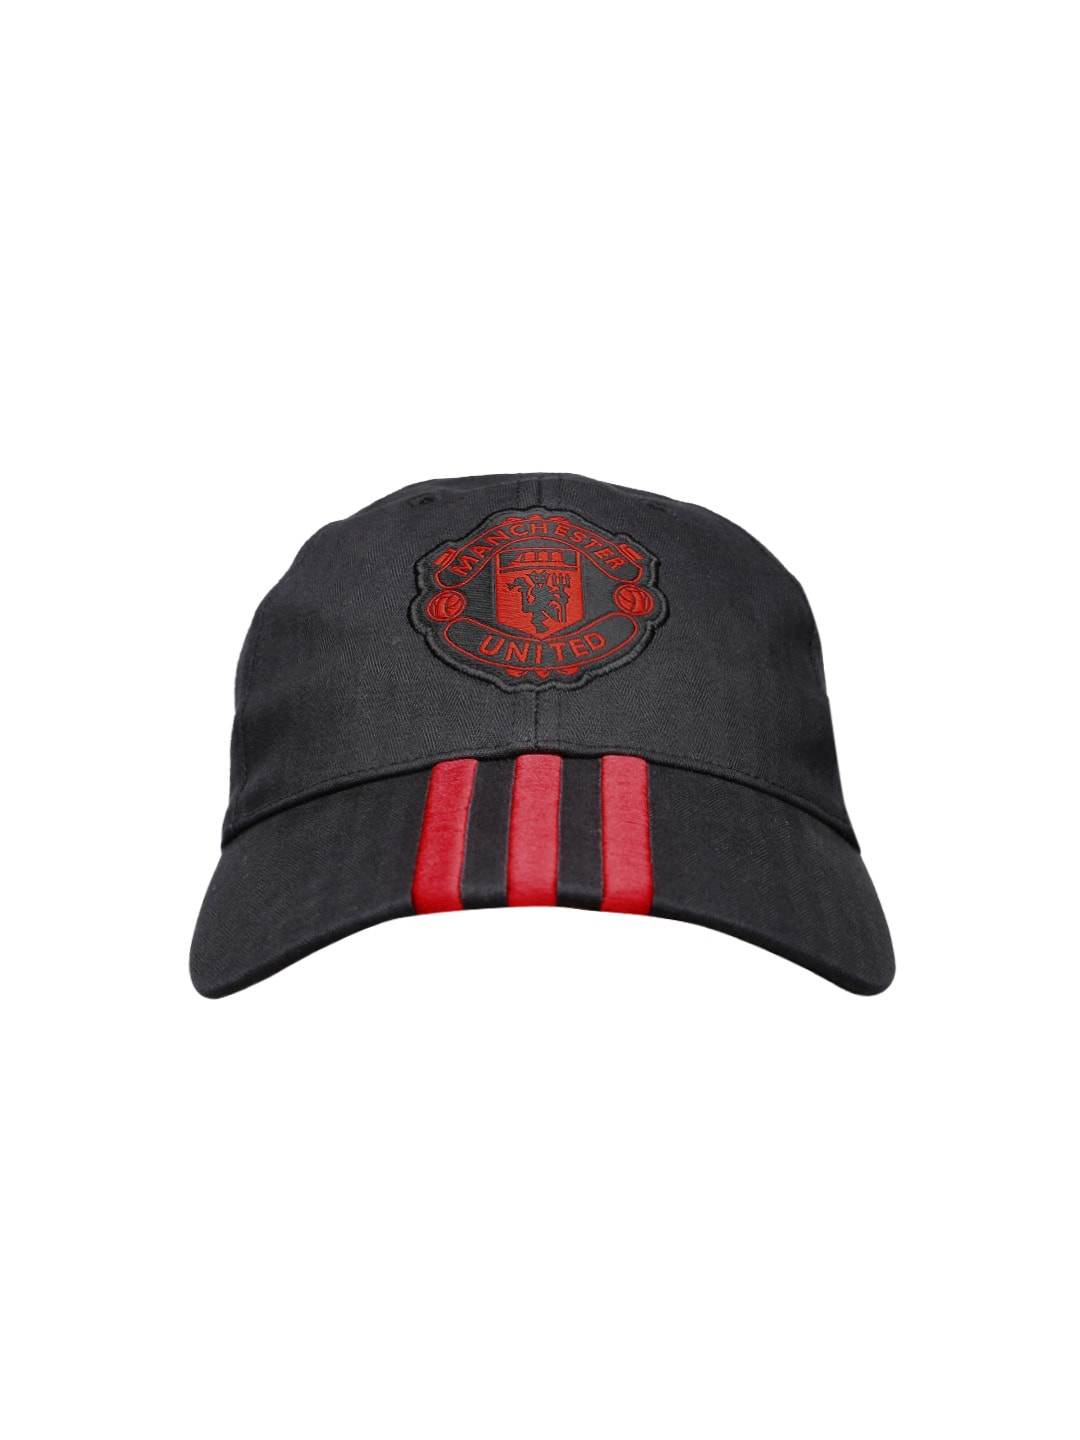 7f83d904eaf37d Adidas ac5609 Unisex Black Manchester United 3s Cap - Best Price in ...